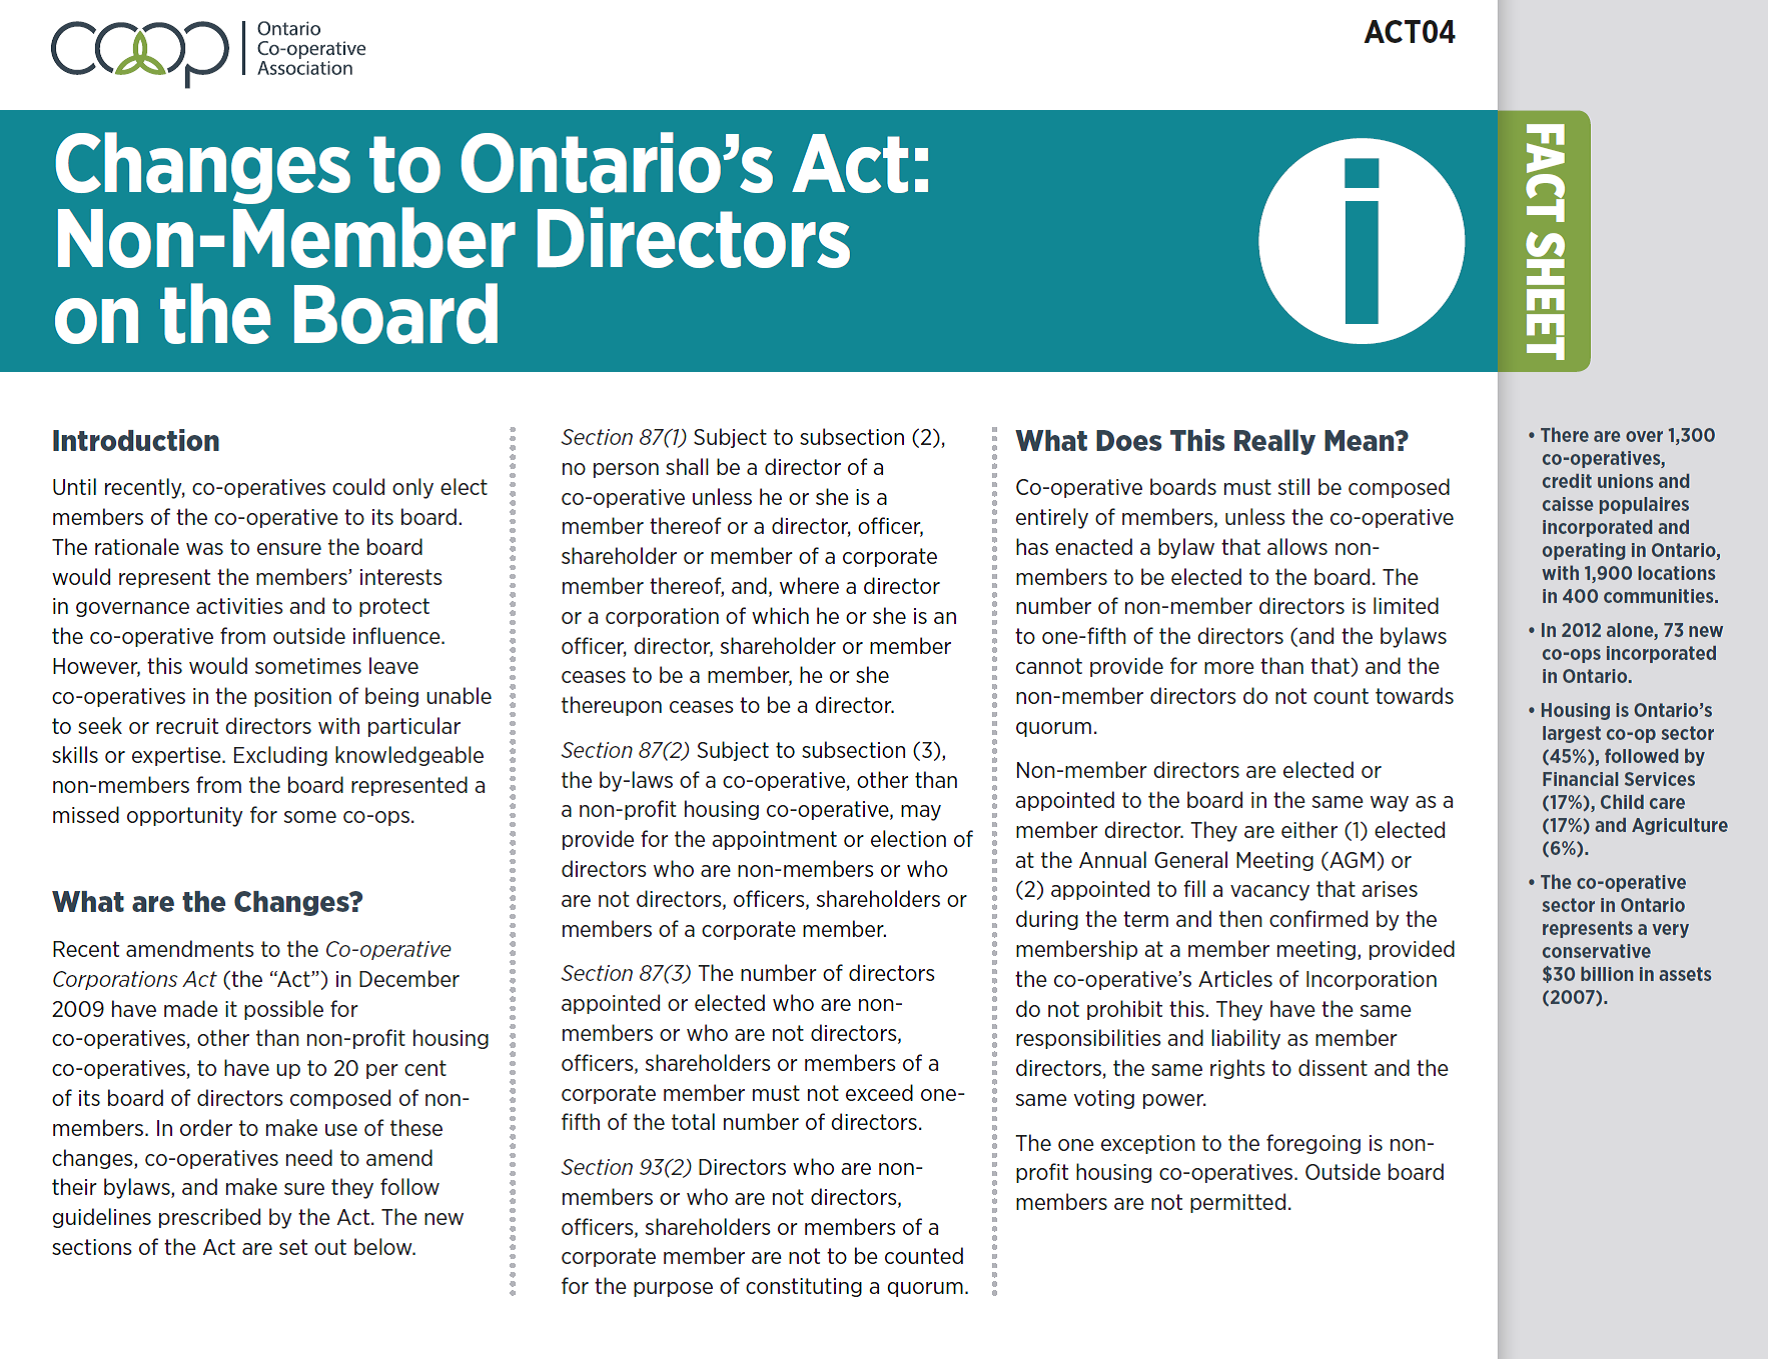 Changes to the Ontario's Act: Non-Member Directors on the Board